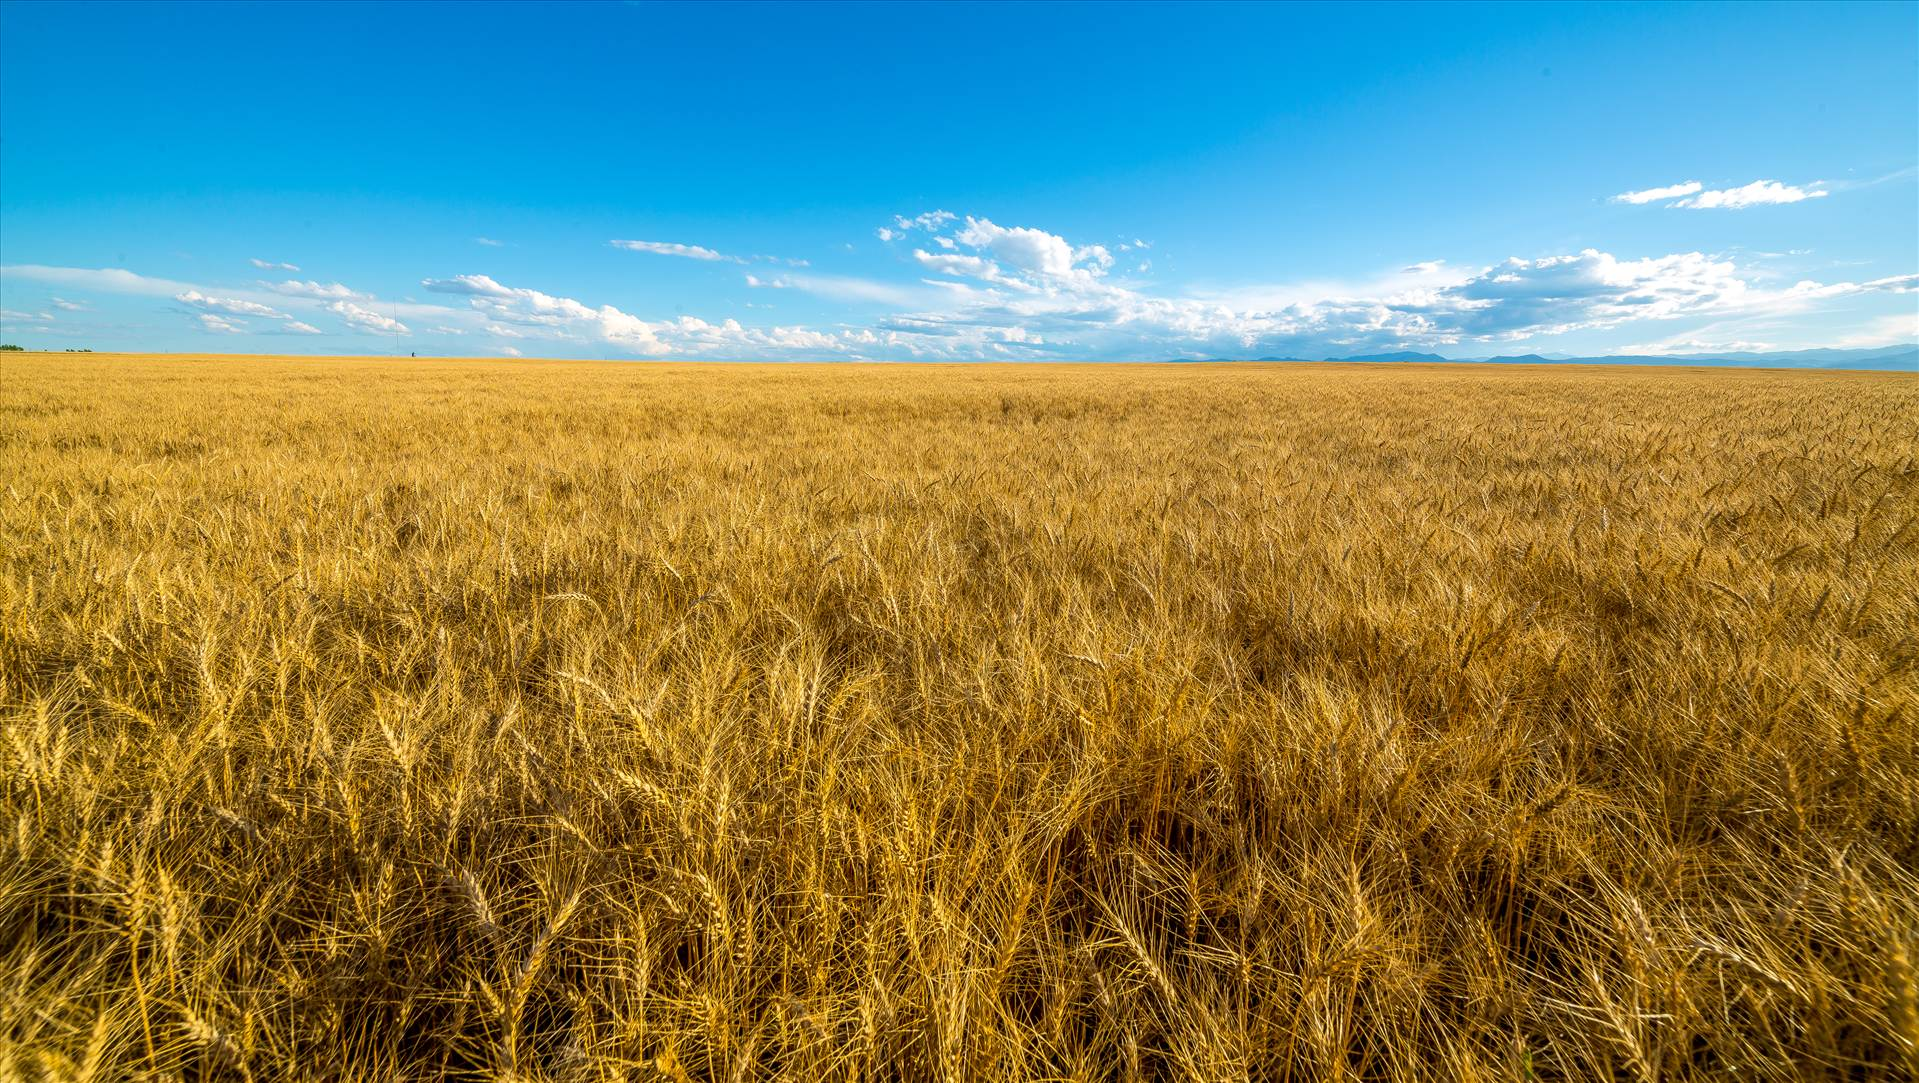 Wheat Field - A field of wheat in late summer near Longmont, Colorado. by D Scott Smith